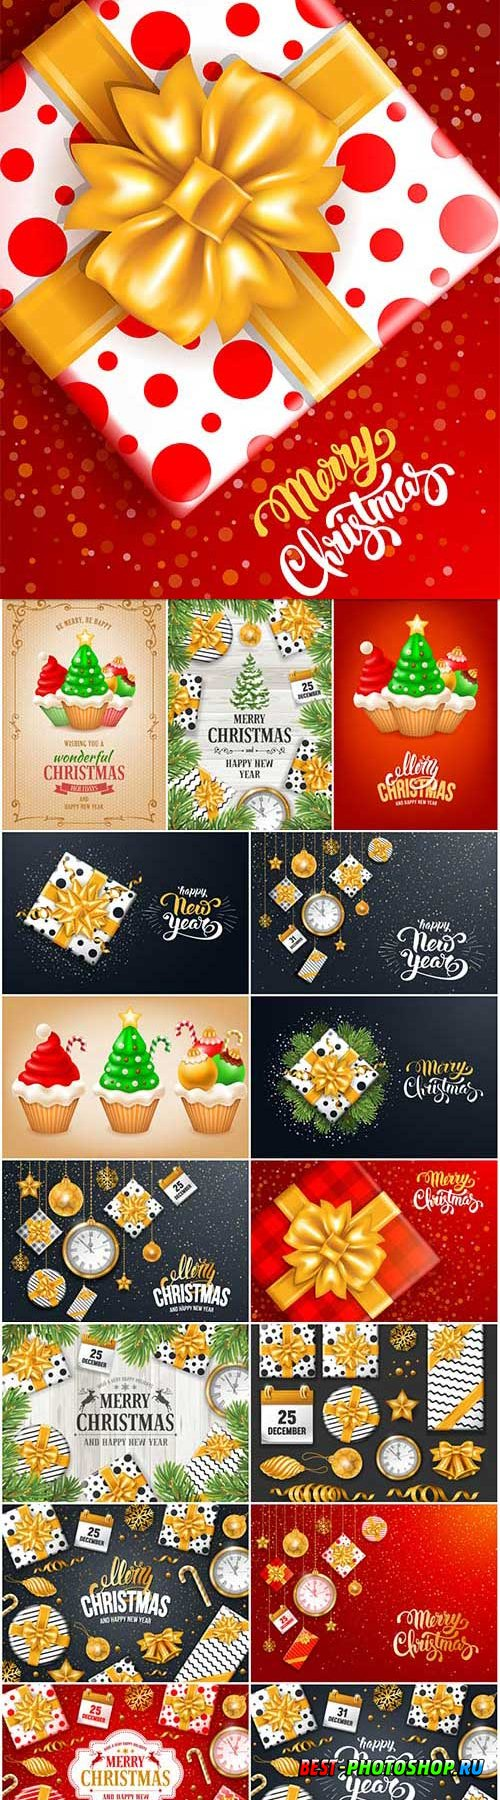 New Year and Christmas vector vol 8